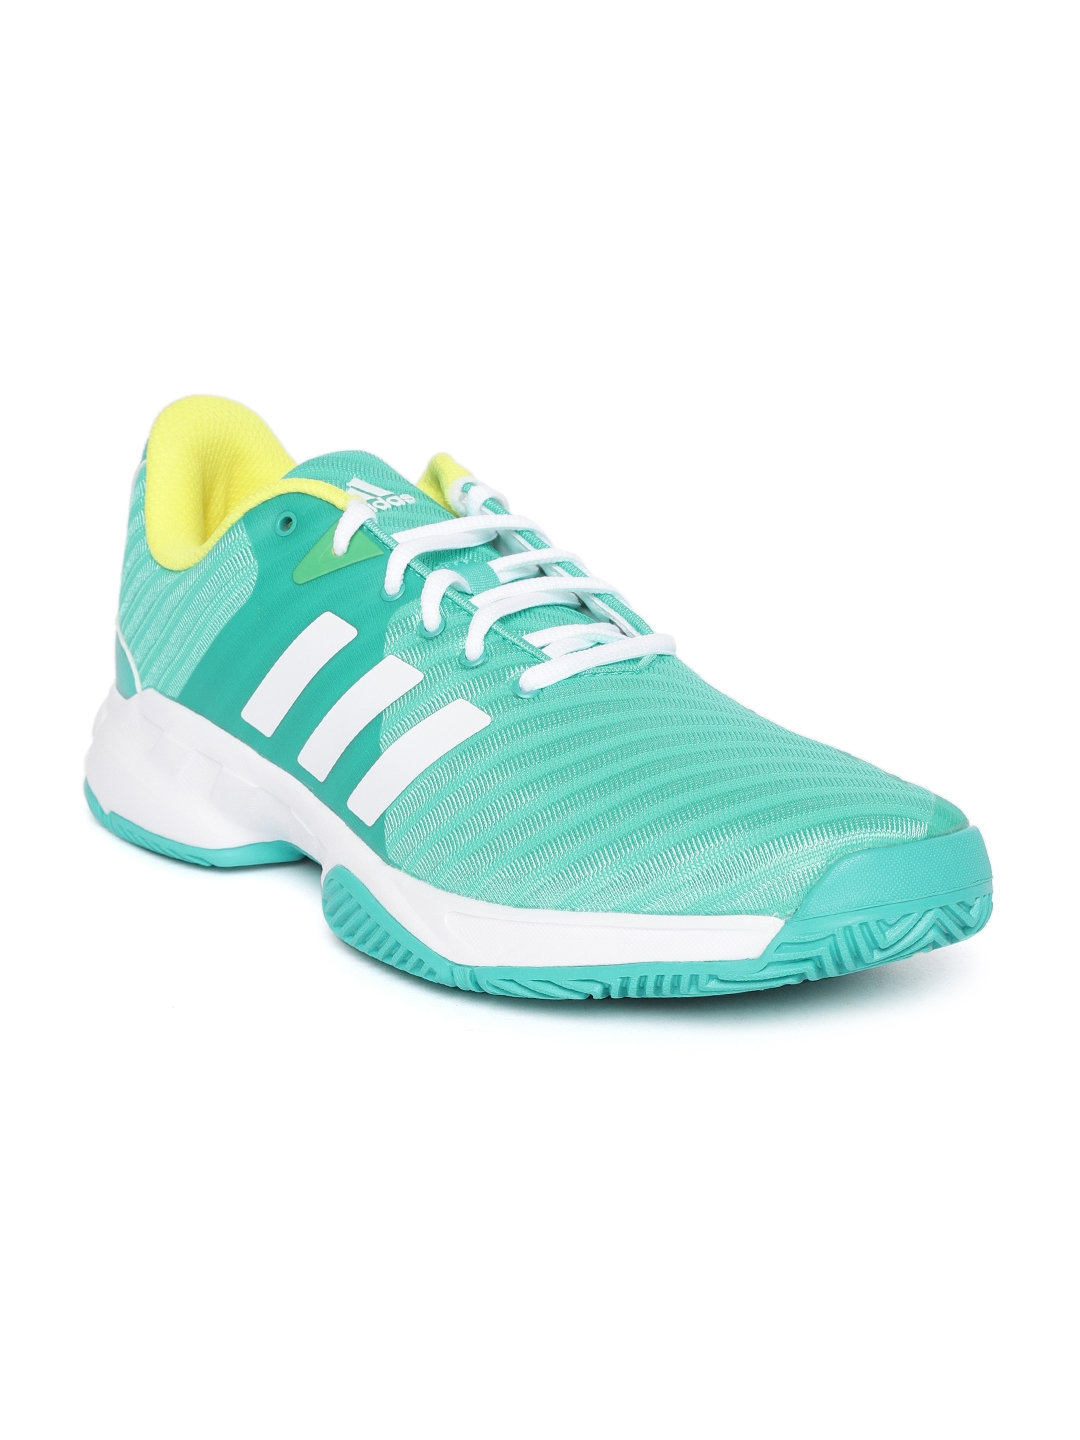 super popular 5bcaf 9cbcd ADIDAS Men Sea Green Barricade Court 3 Tennis Shoes